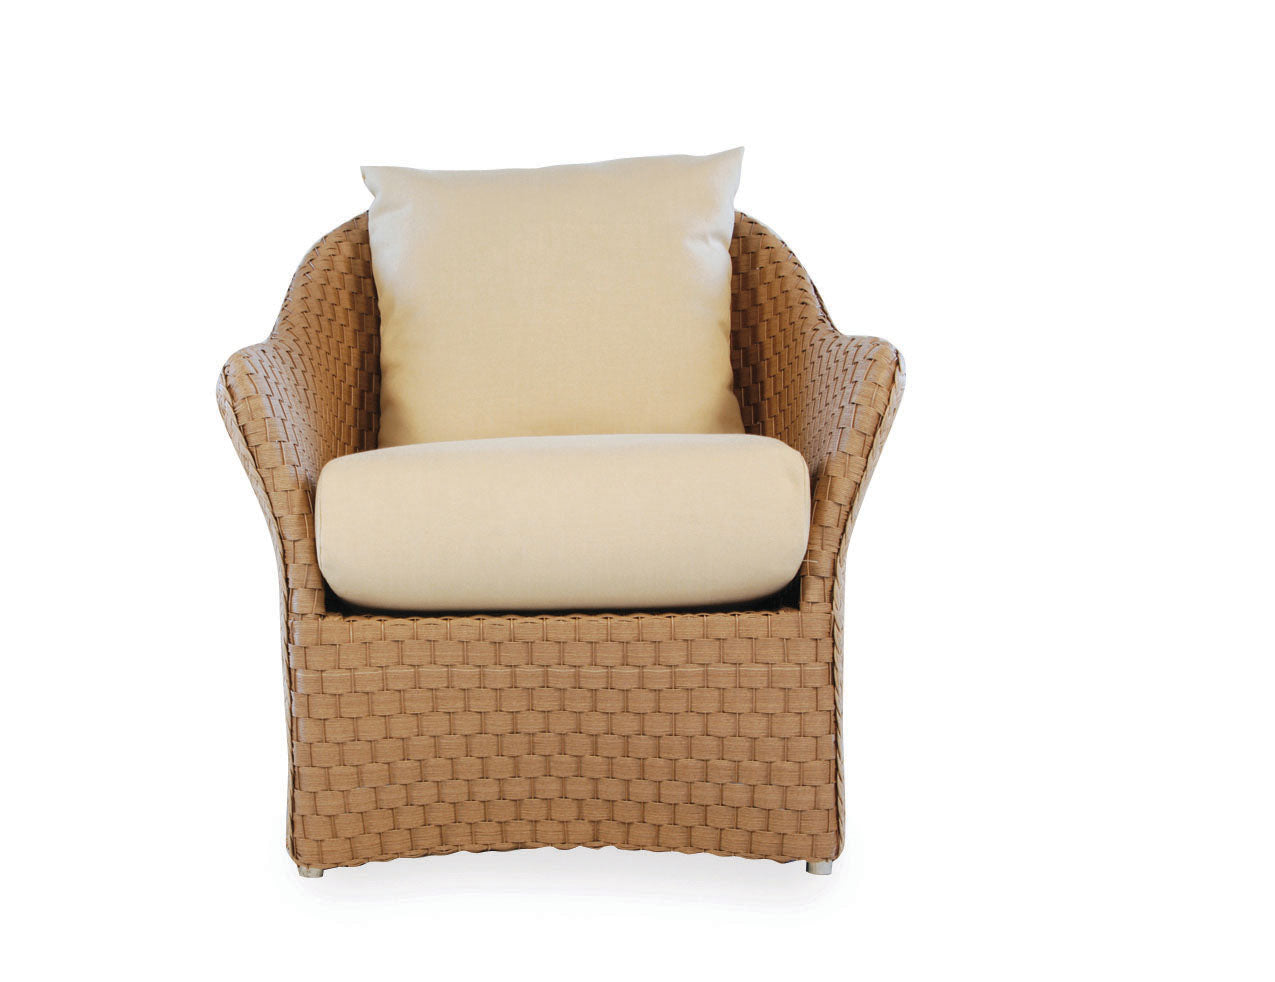 Lloyd Flanders Lloyd Flanders Weekend Retreat Lounge Chair Chair - Rattan Imports